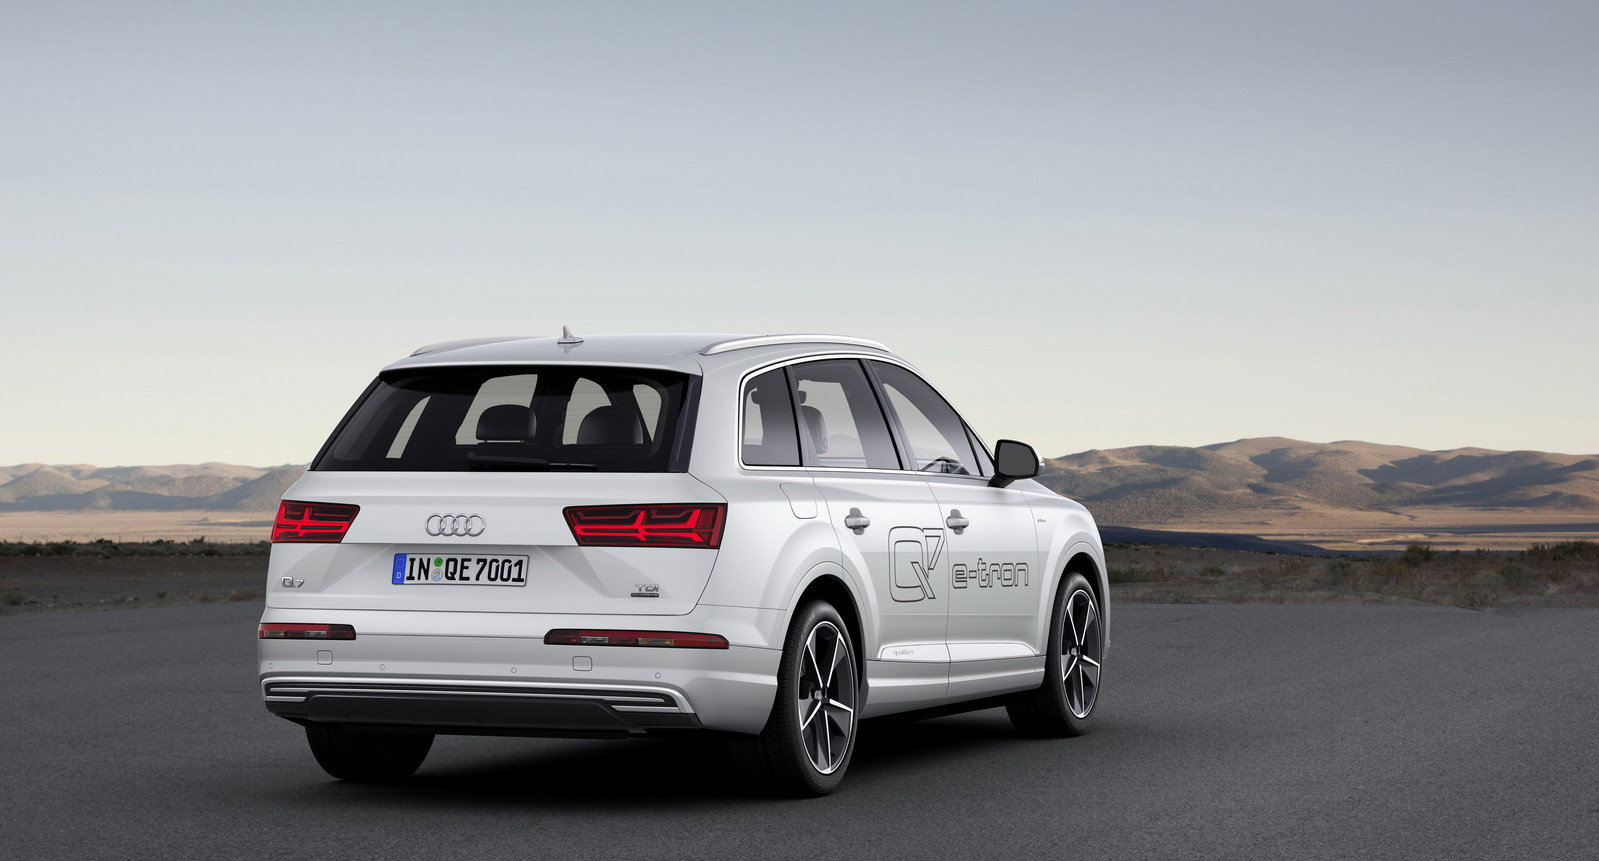 2016 audi q7 e tron 3 0 tdi quattro picture 619498 car review top speed. Black Bedroom Furniture Sets. Home Design Ideas